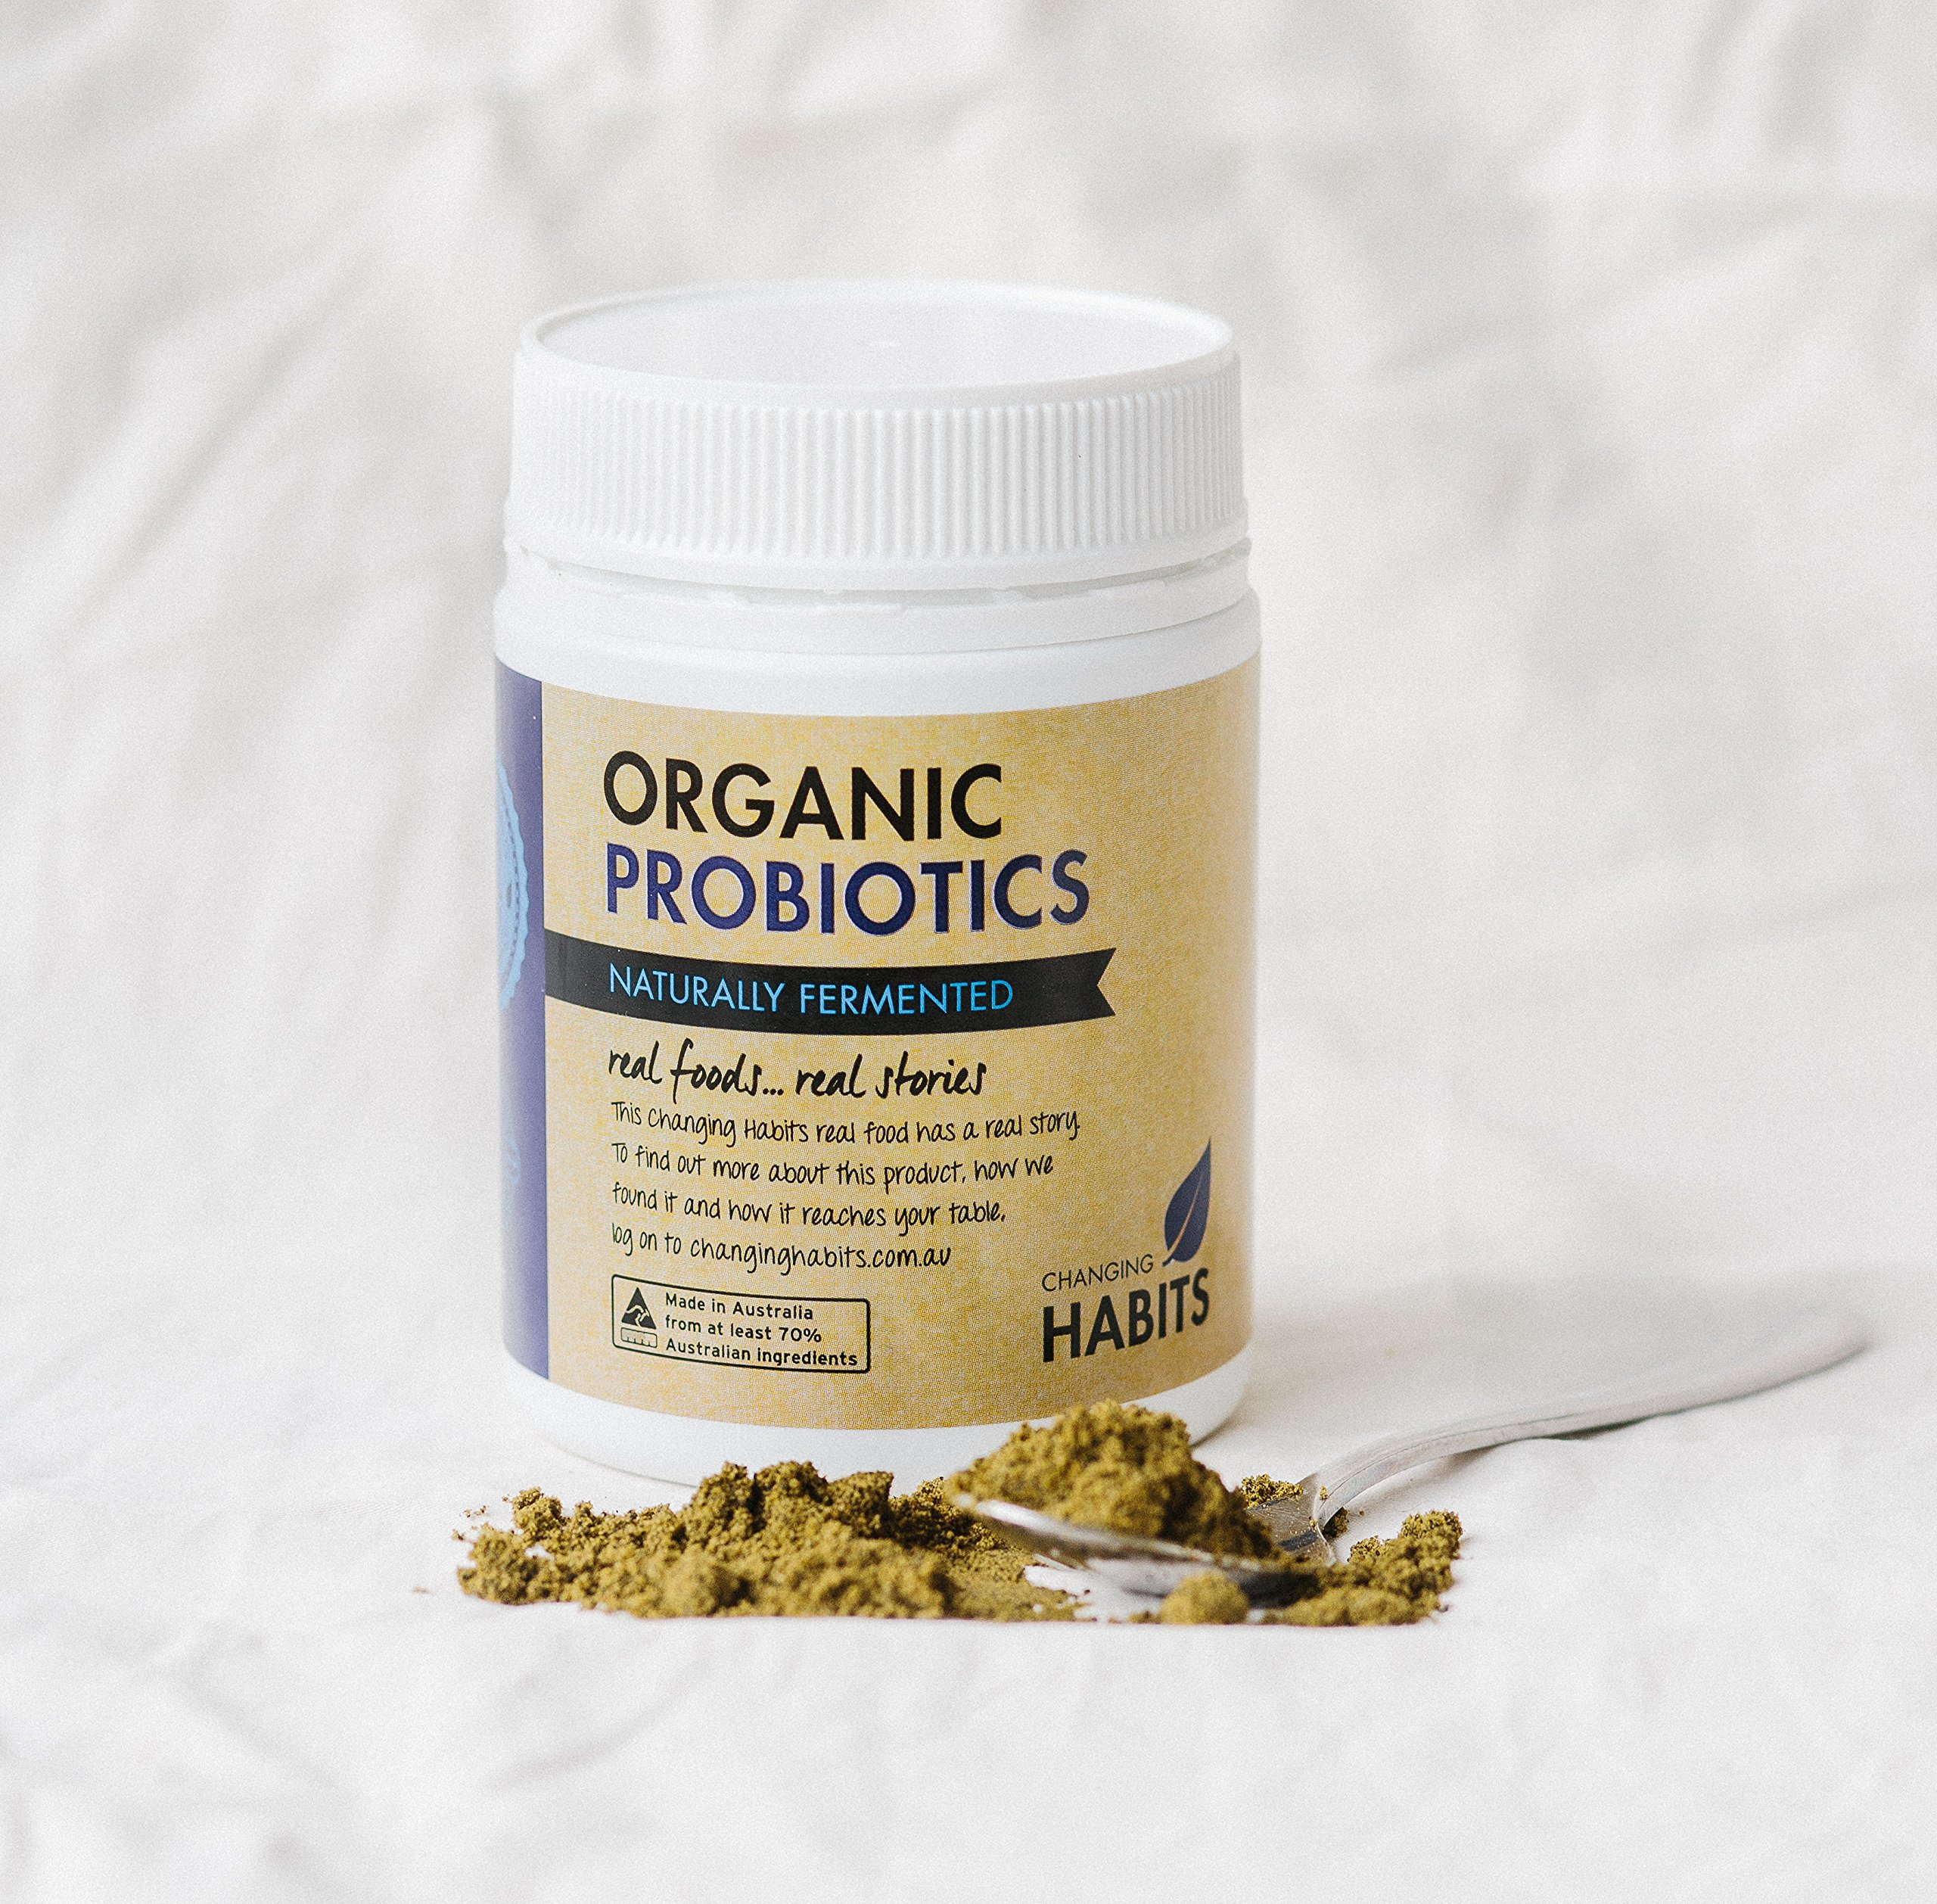 Organic Probiotic Powder With Prebiotic Fiber. 60+ Servings! Soothing, Great Tasting Wholefood Vegan Probiotics and Prebiotics For Women, Men and Kids by Changing Habits (Image #4)